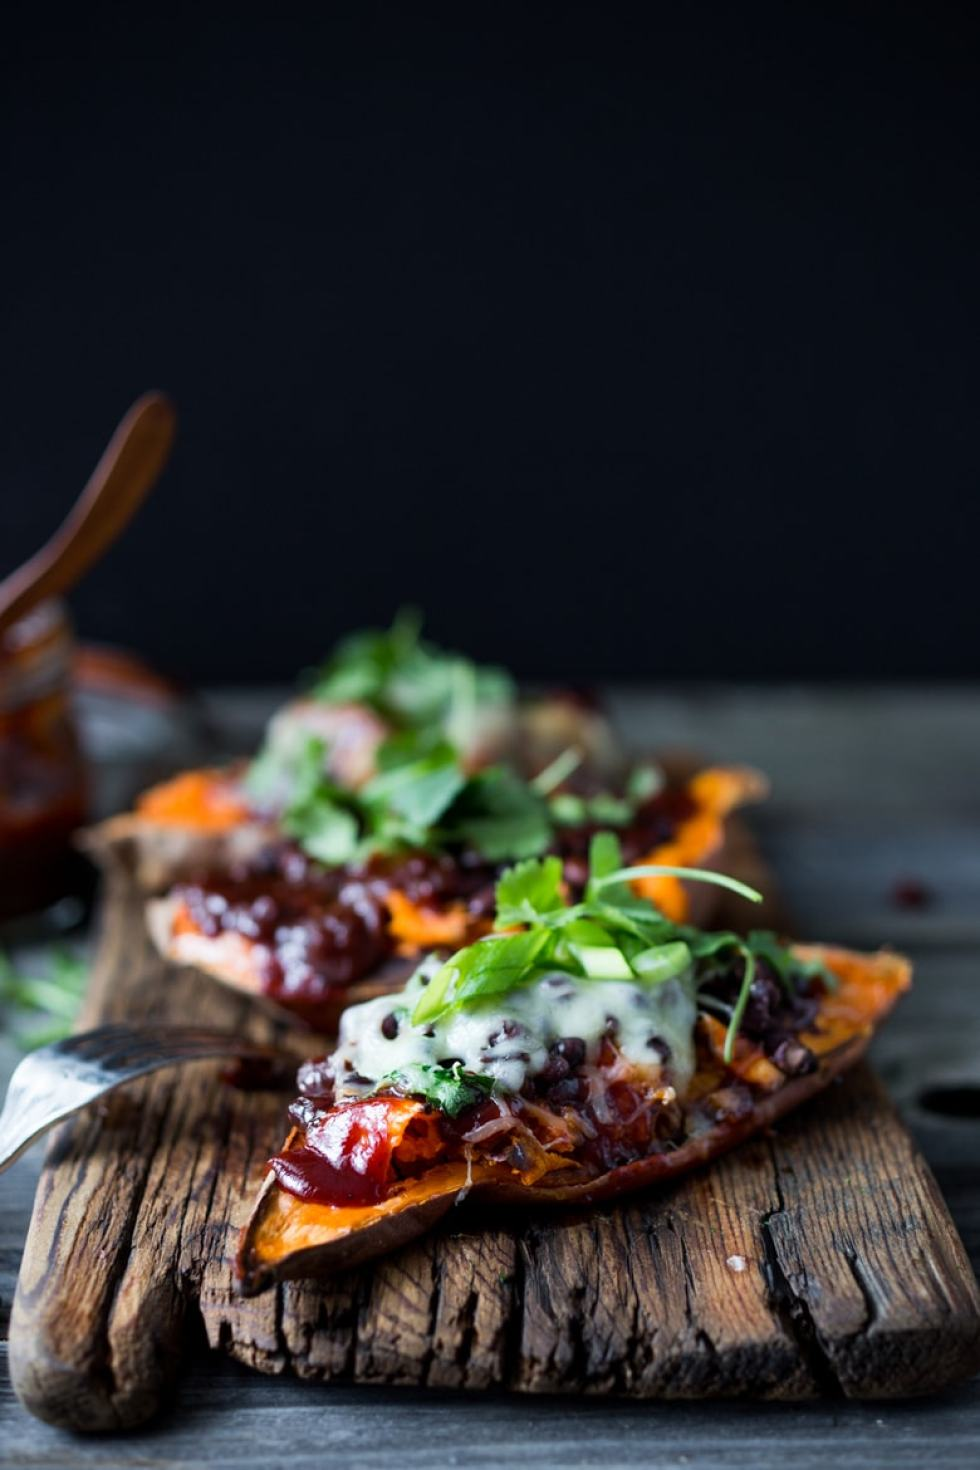 Skinny BBQ Chicken (or Black Bean ) Stuffed Sweet Potato- keep with vegan with black beans and avocado, or add chicken and melty cheese, and top with cilantro. Either way a win!! #glutenfree #vegan | www.feastingathome.com